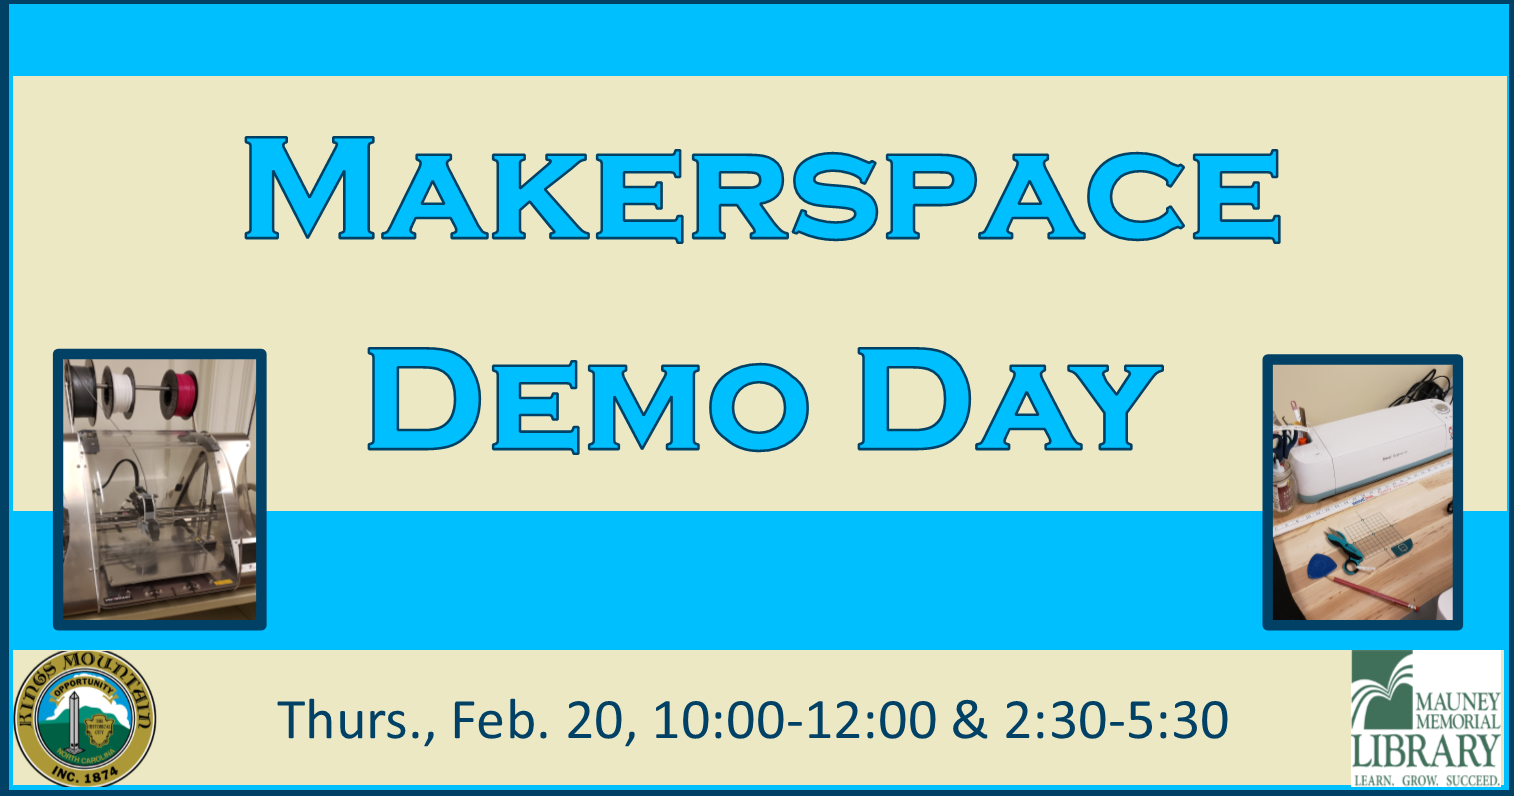 Makerspace Demo Day